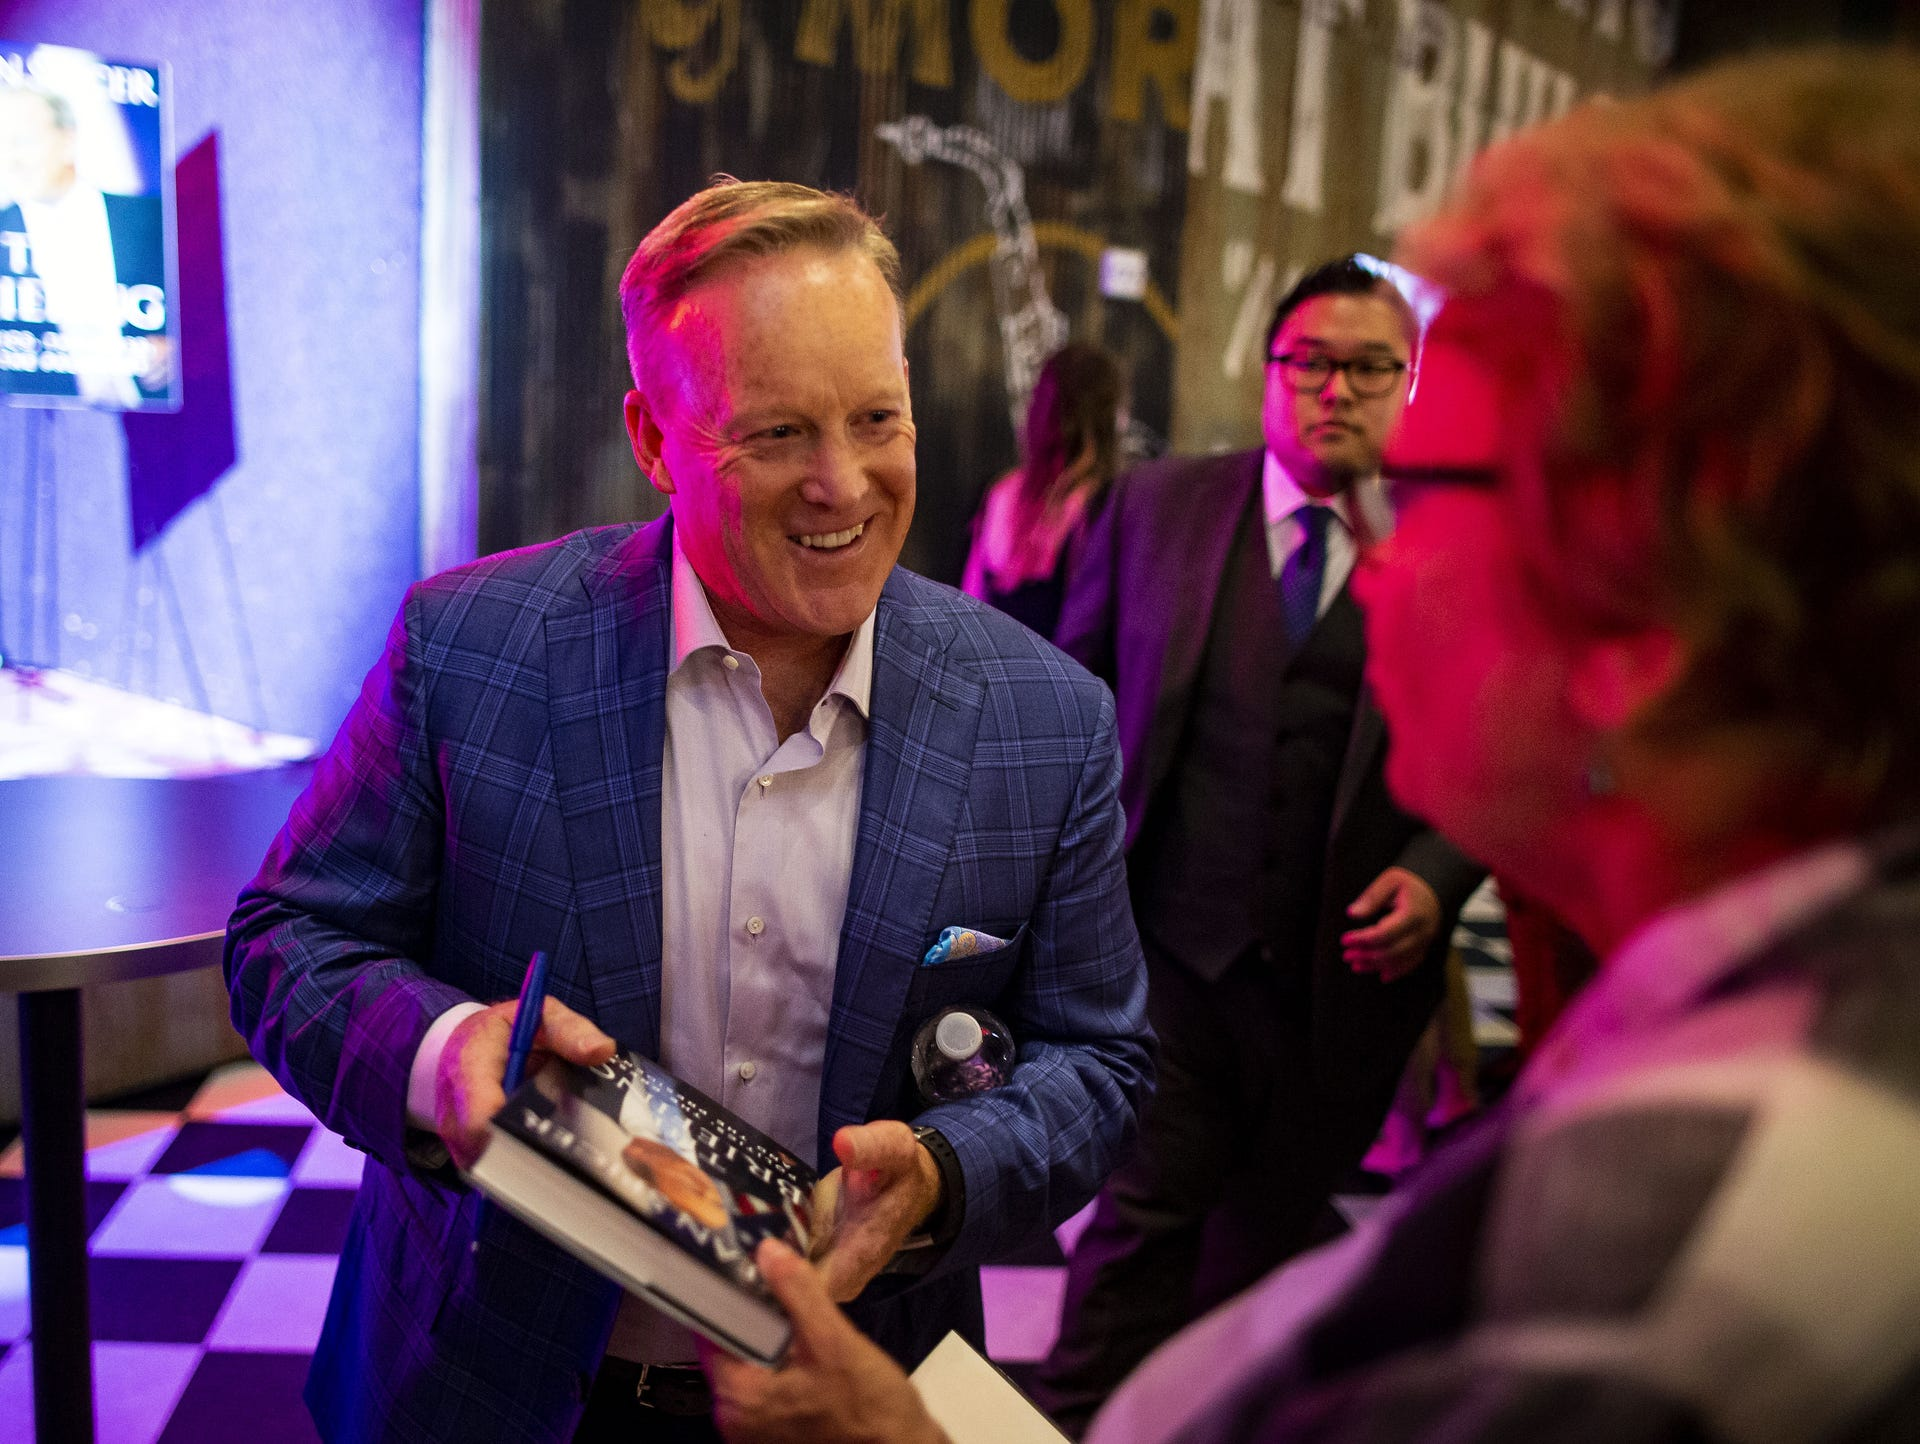 Sean Spicer accused of using racial slur at a heated book signing event